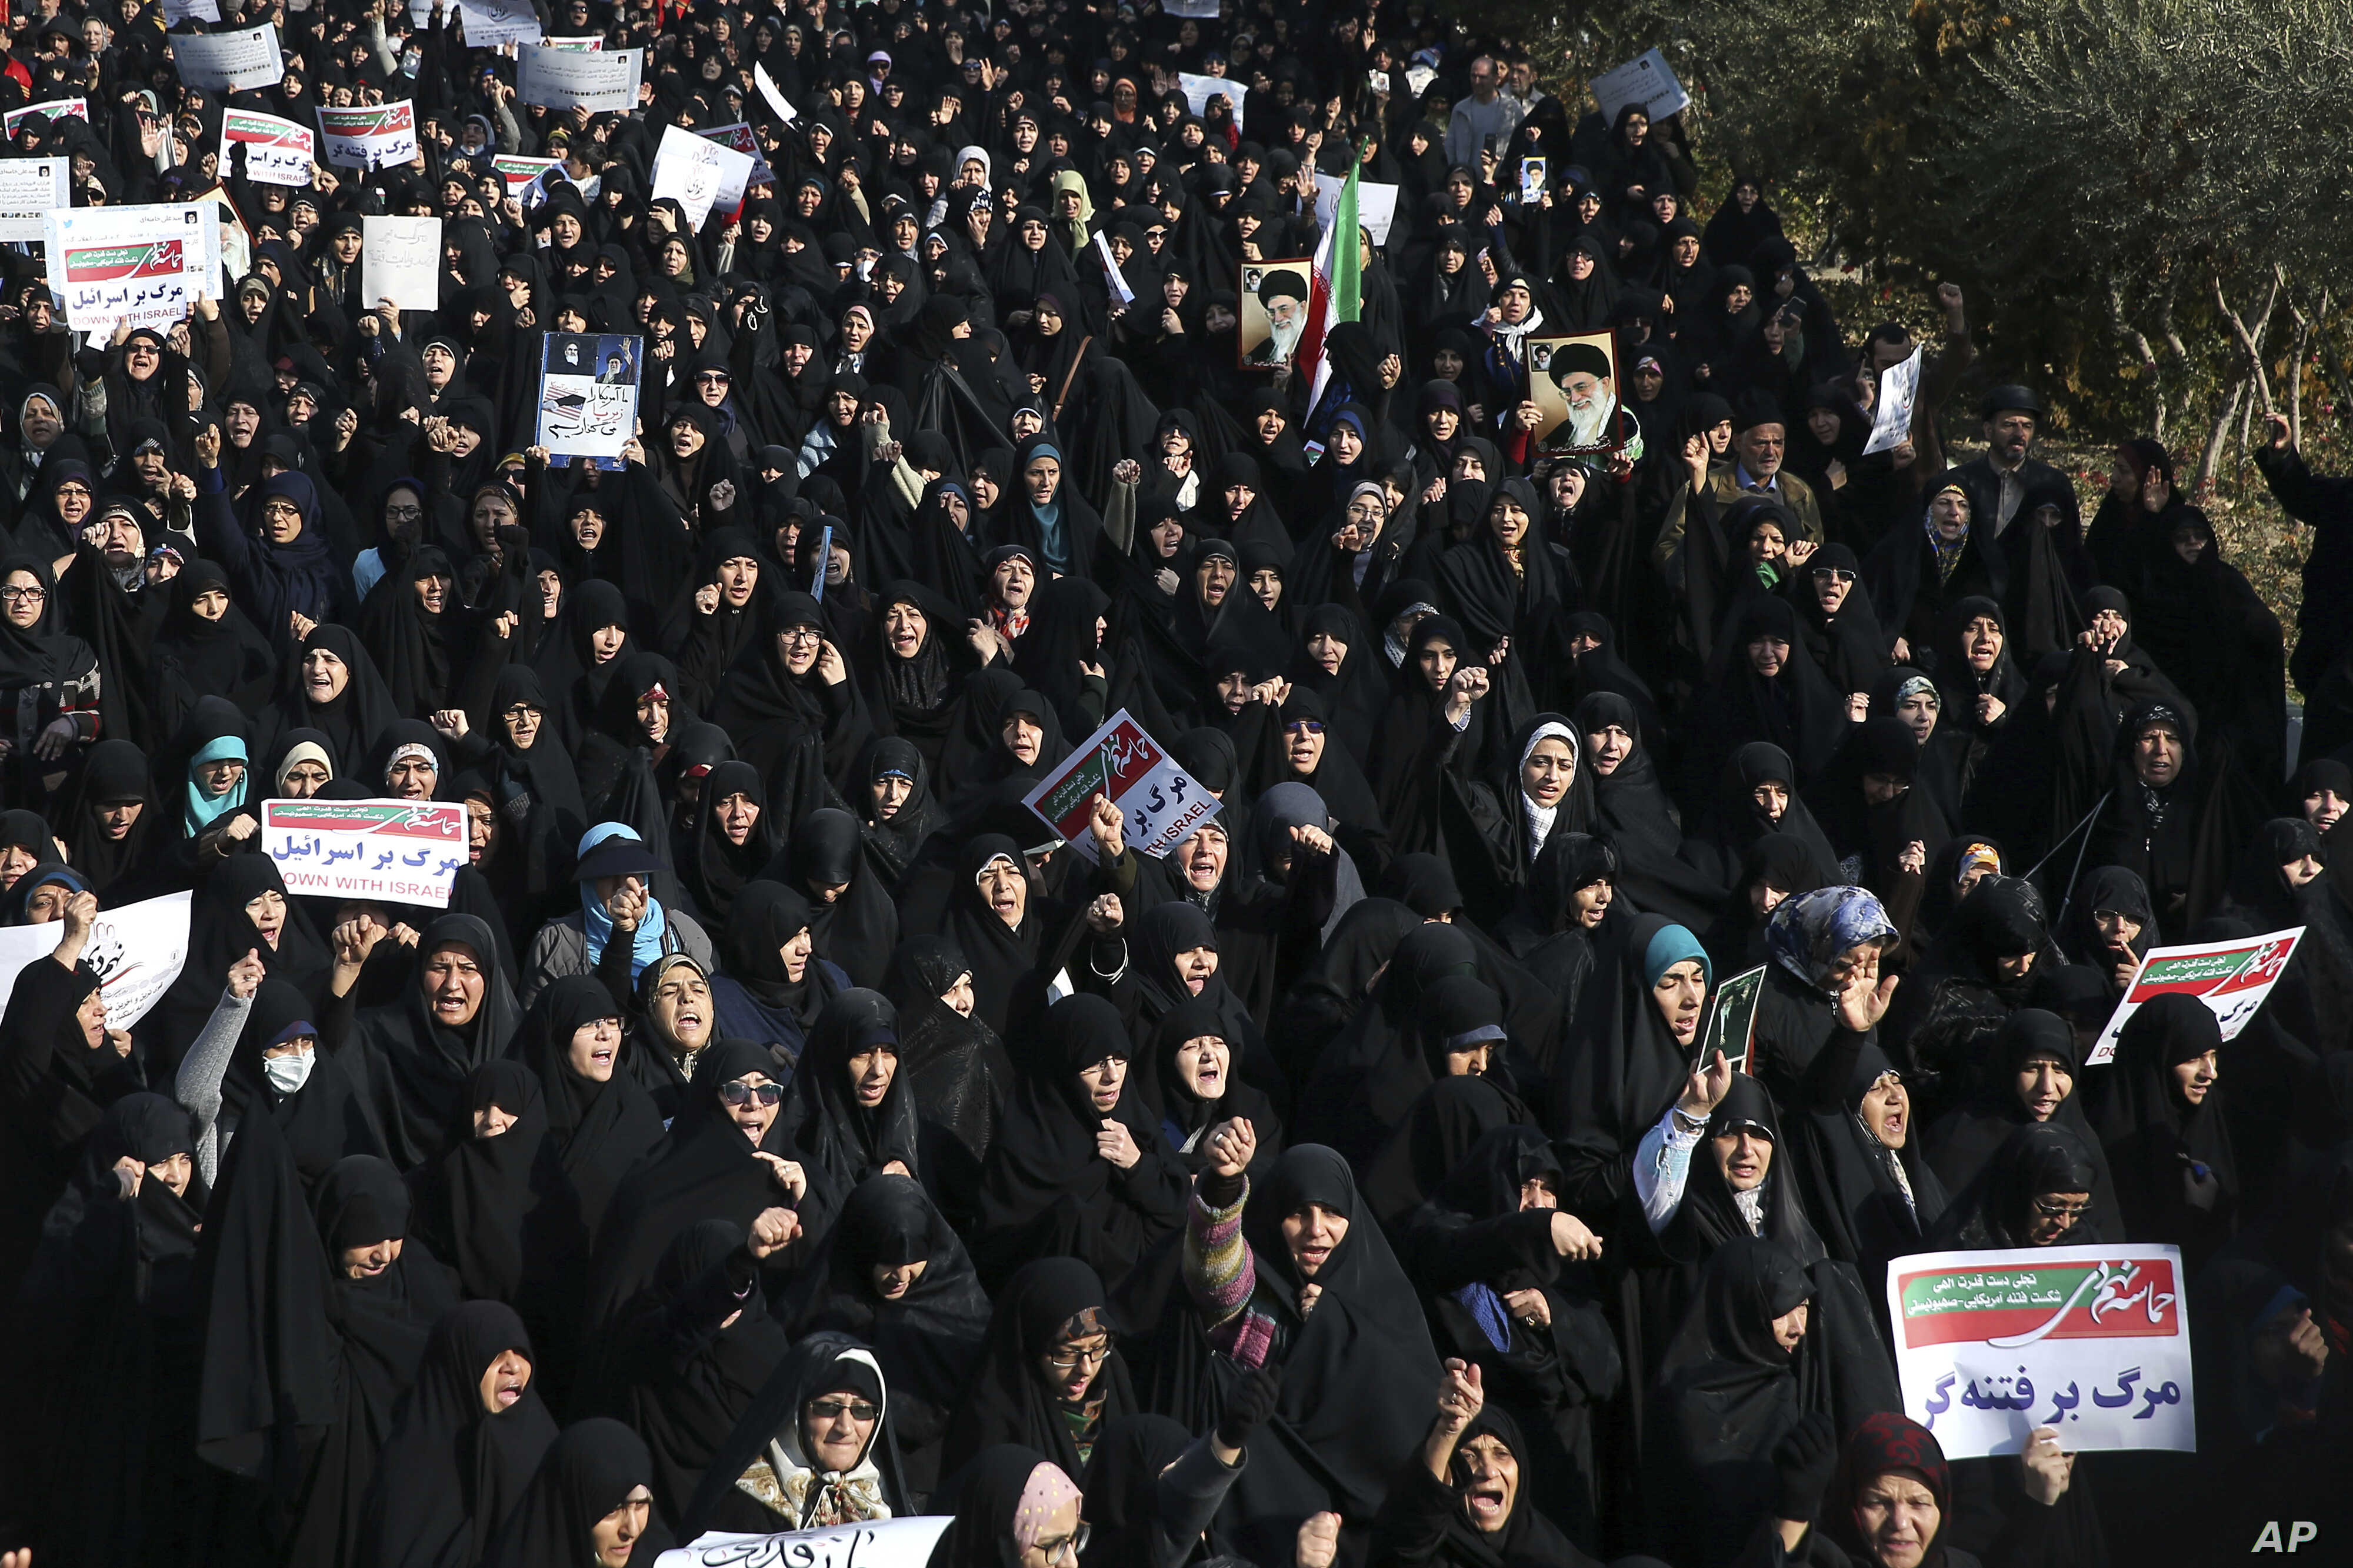 Iranian protesters chant slogans at a rally in Tehran, Iran, Dec. 30, 2017. Iranian hard-liners rallied Saturday to support the country's supreme leader and clerically overseen government as spontaneous protests sparked by anger over the country's ai...